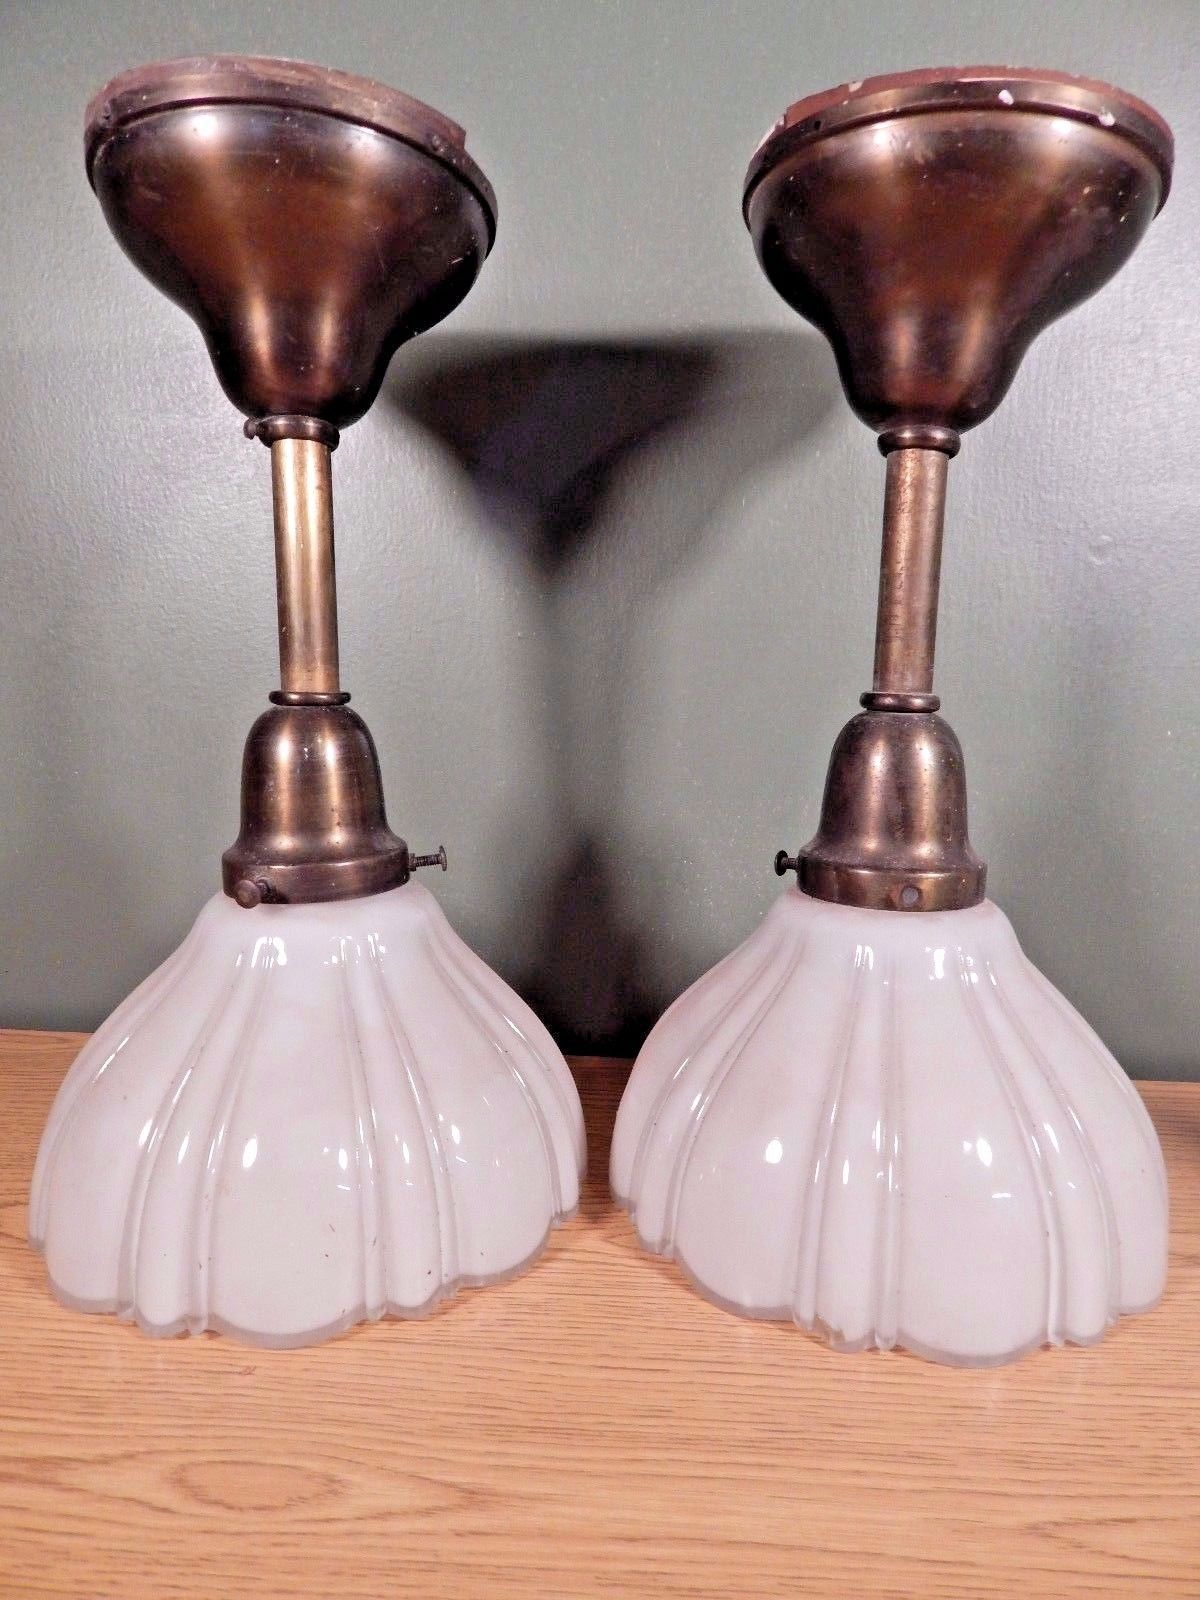 Antique Pair Of Hanging Lights With Shades Removed From An Ohio Masonic  Lodge U2022 $195.00